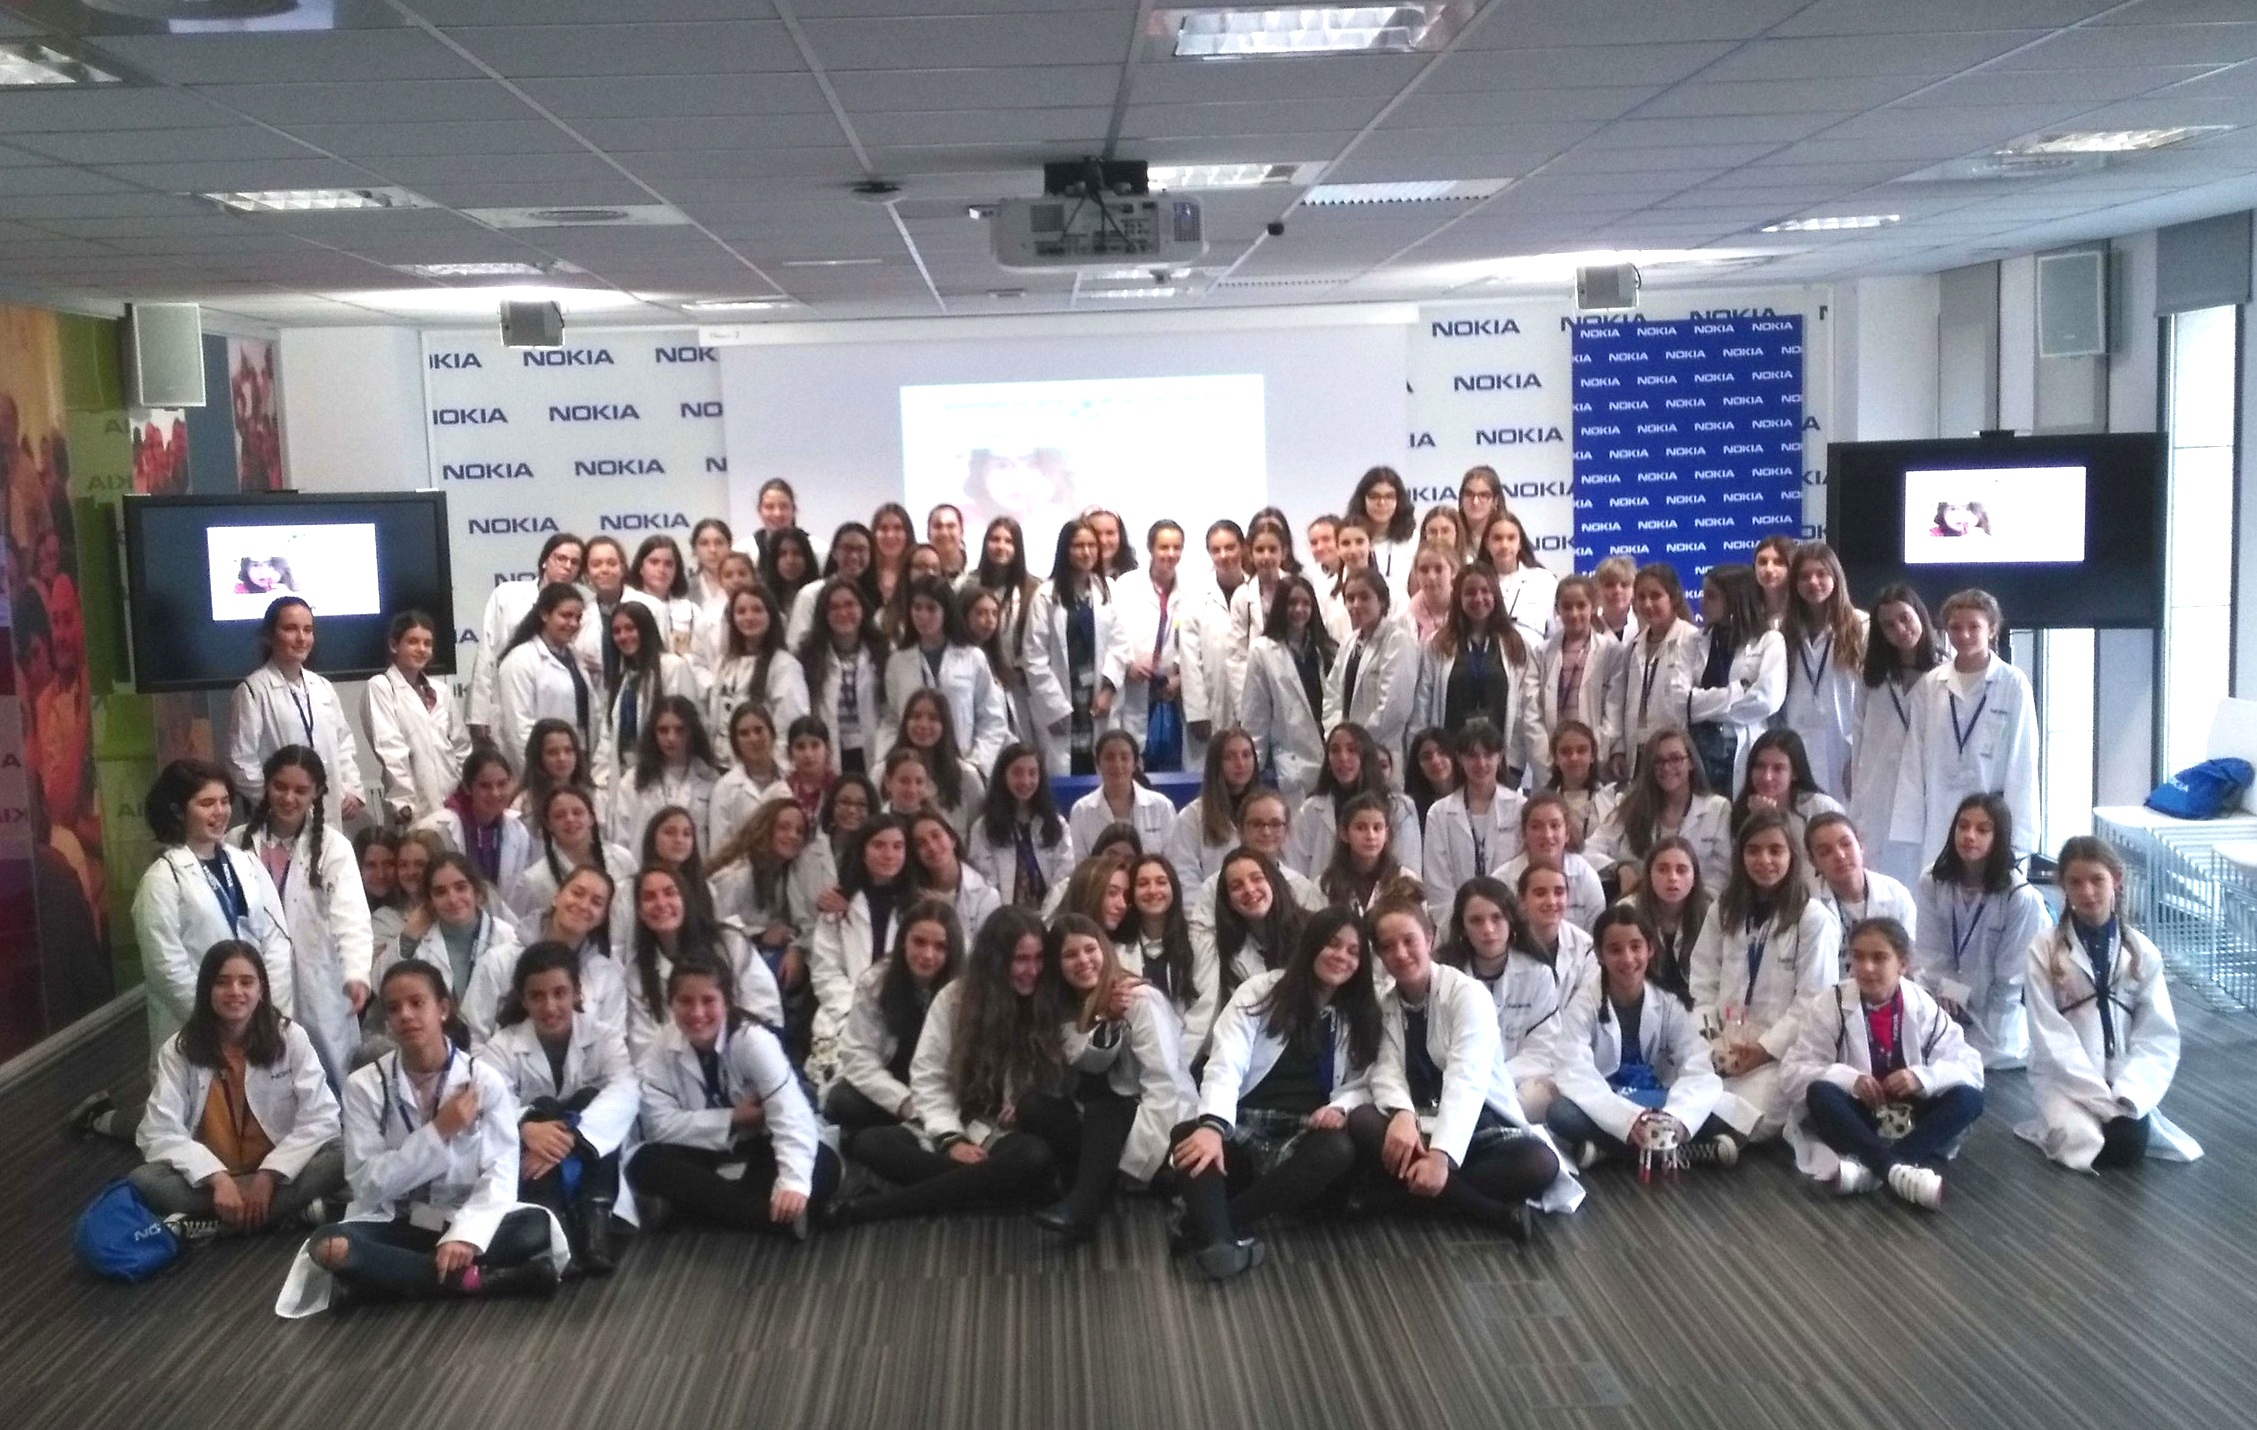 g4g Day @Madrid - Dec. 2018    Our last event in 2018 was in Madrid, with the terrific team of Nokia! Fom drawing into VR to learning the chemistry behind bath bombs, 100 girls could experience all the fun in science!